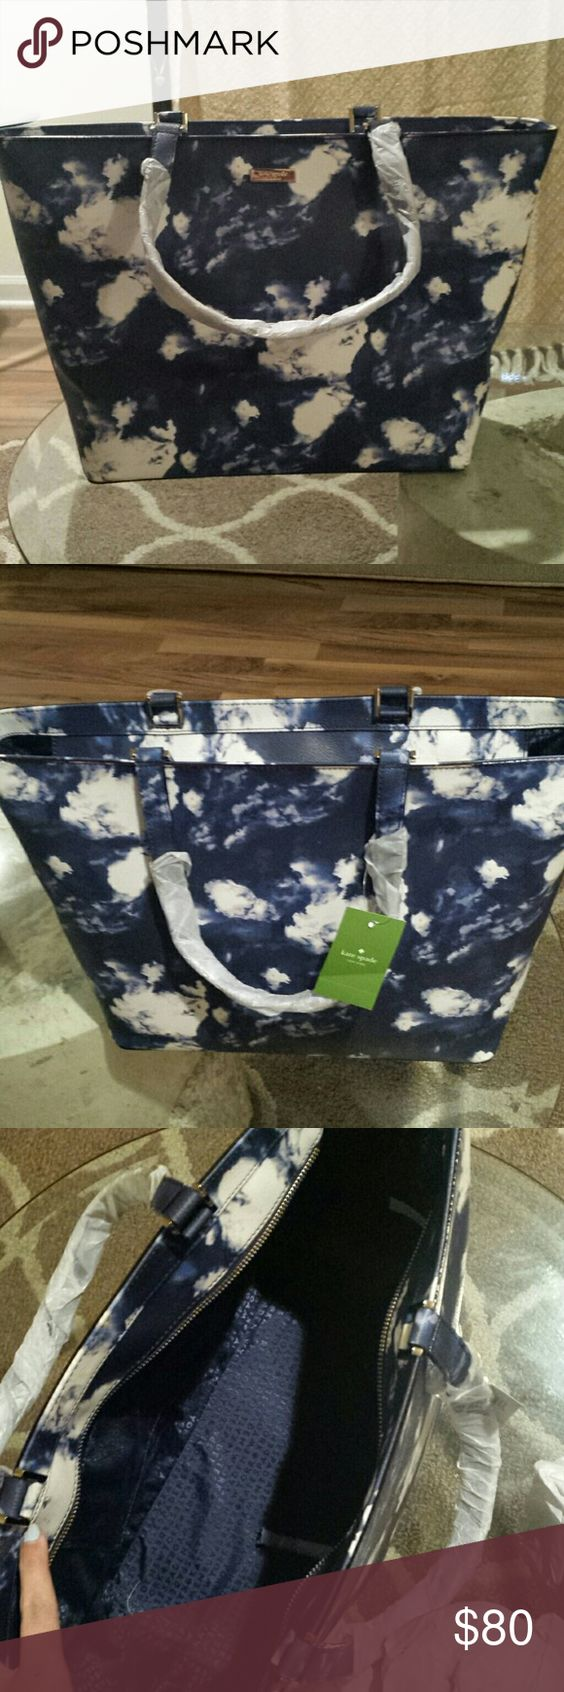 Purse Kate spade cloud purse kate spade Bags Shoulder Bags